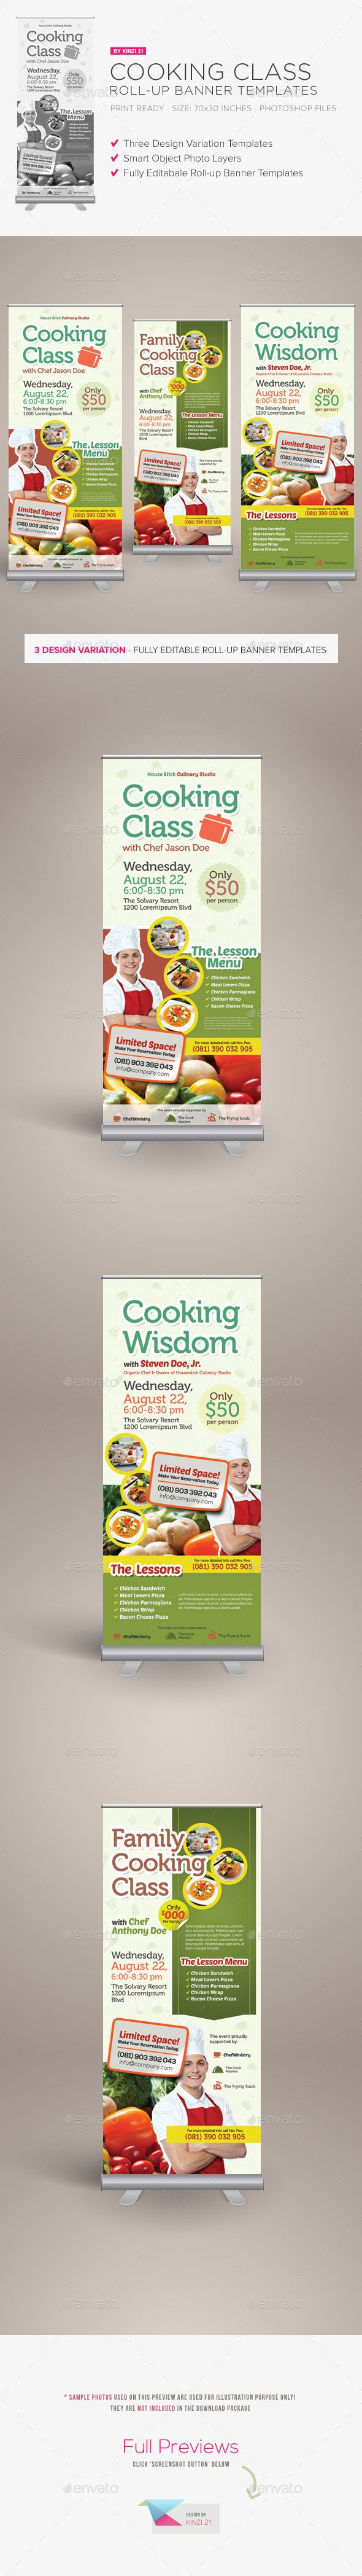 moving company flyer templates flyers flyer template and moving cooking class roll up banner templates